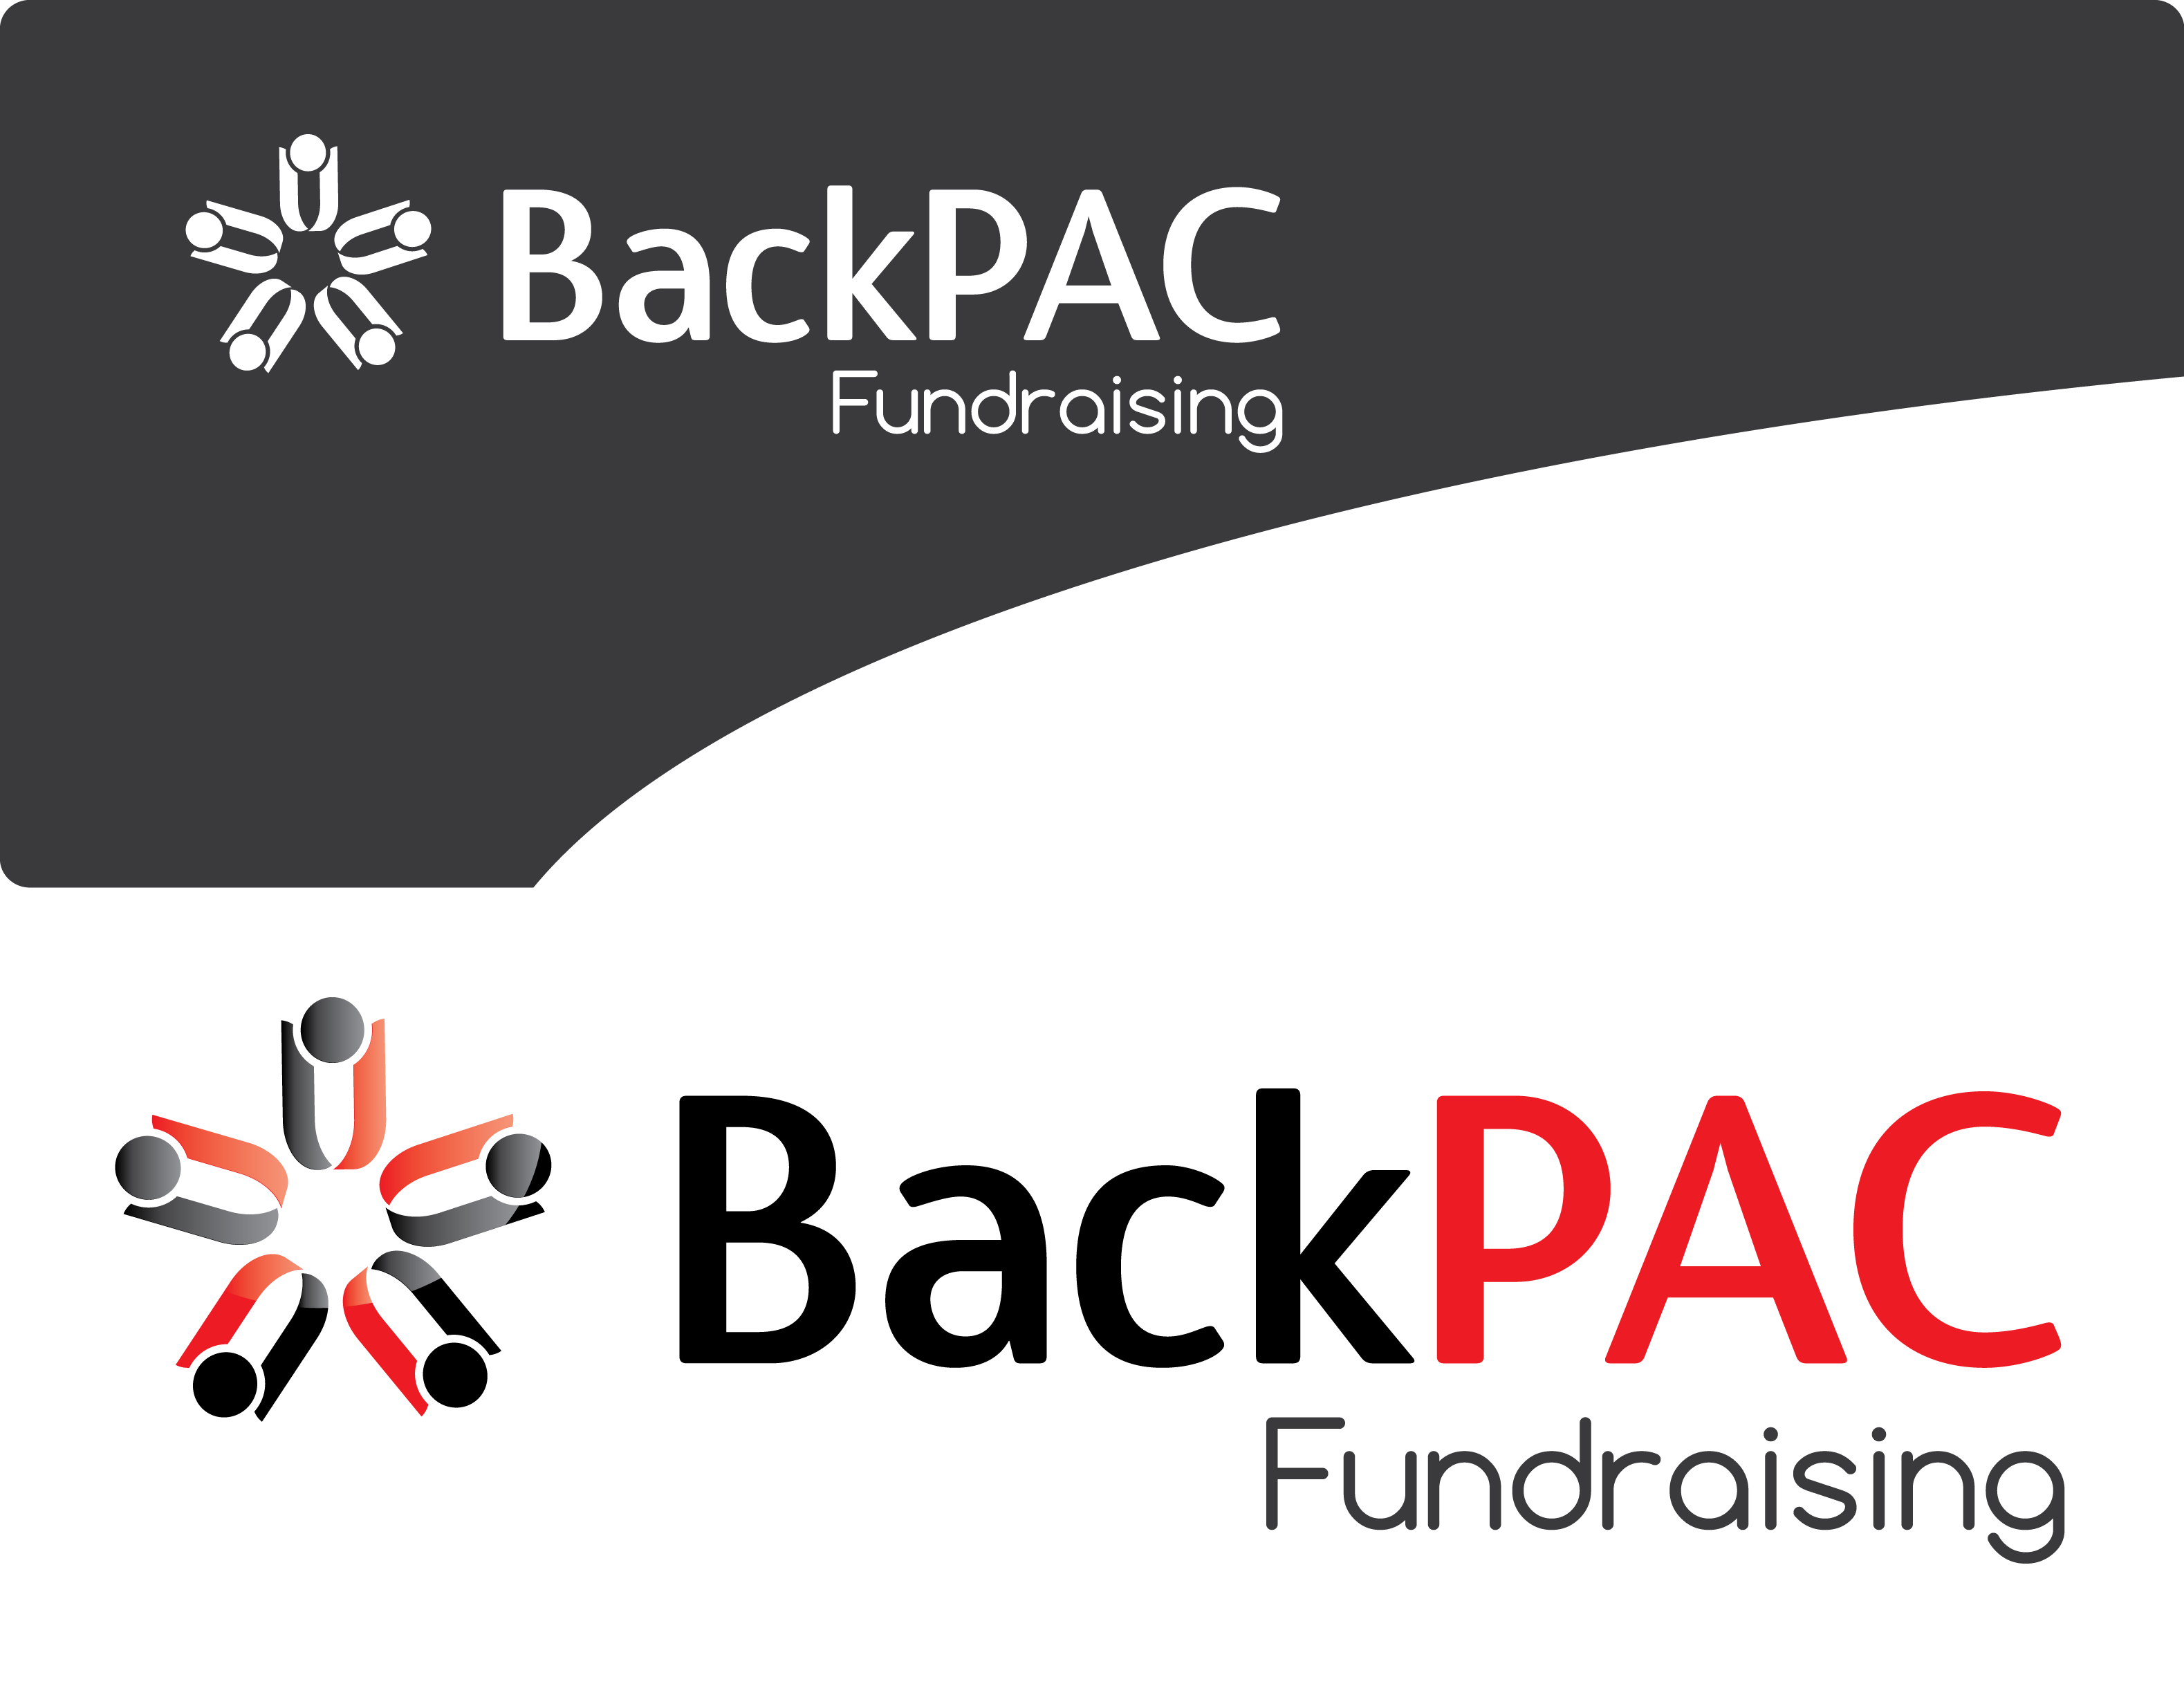 Logo Design by 354studio - Entry No. 34 in the Logo Design Contest Imaginative Logo Design for BackPAC Fundraising.